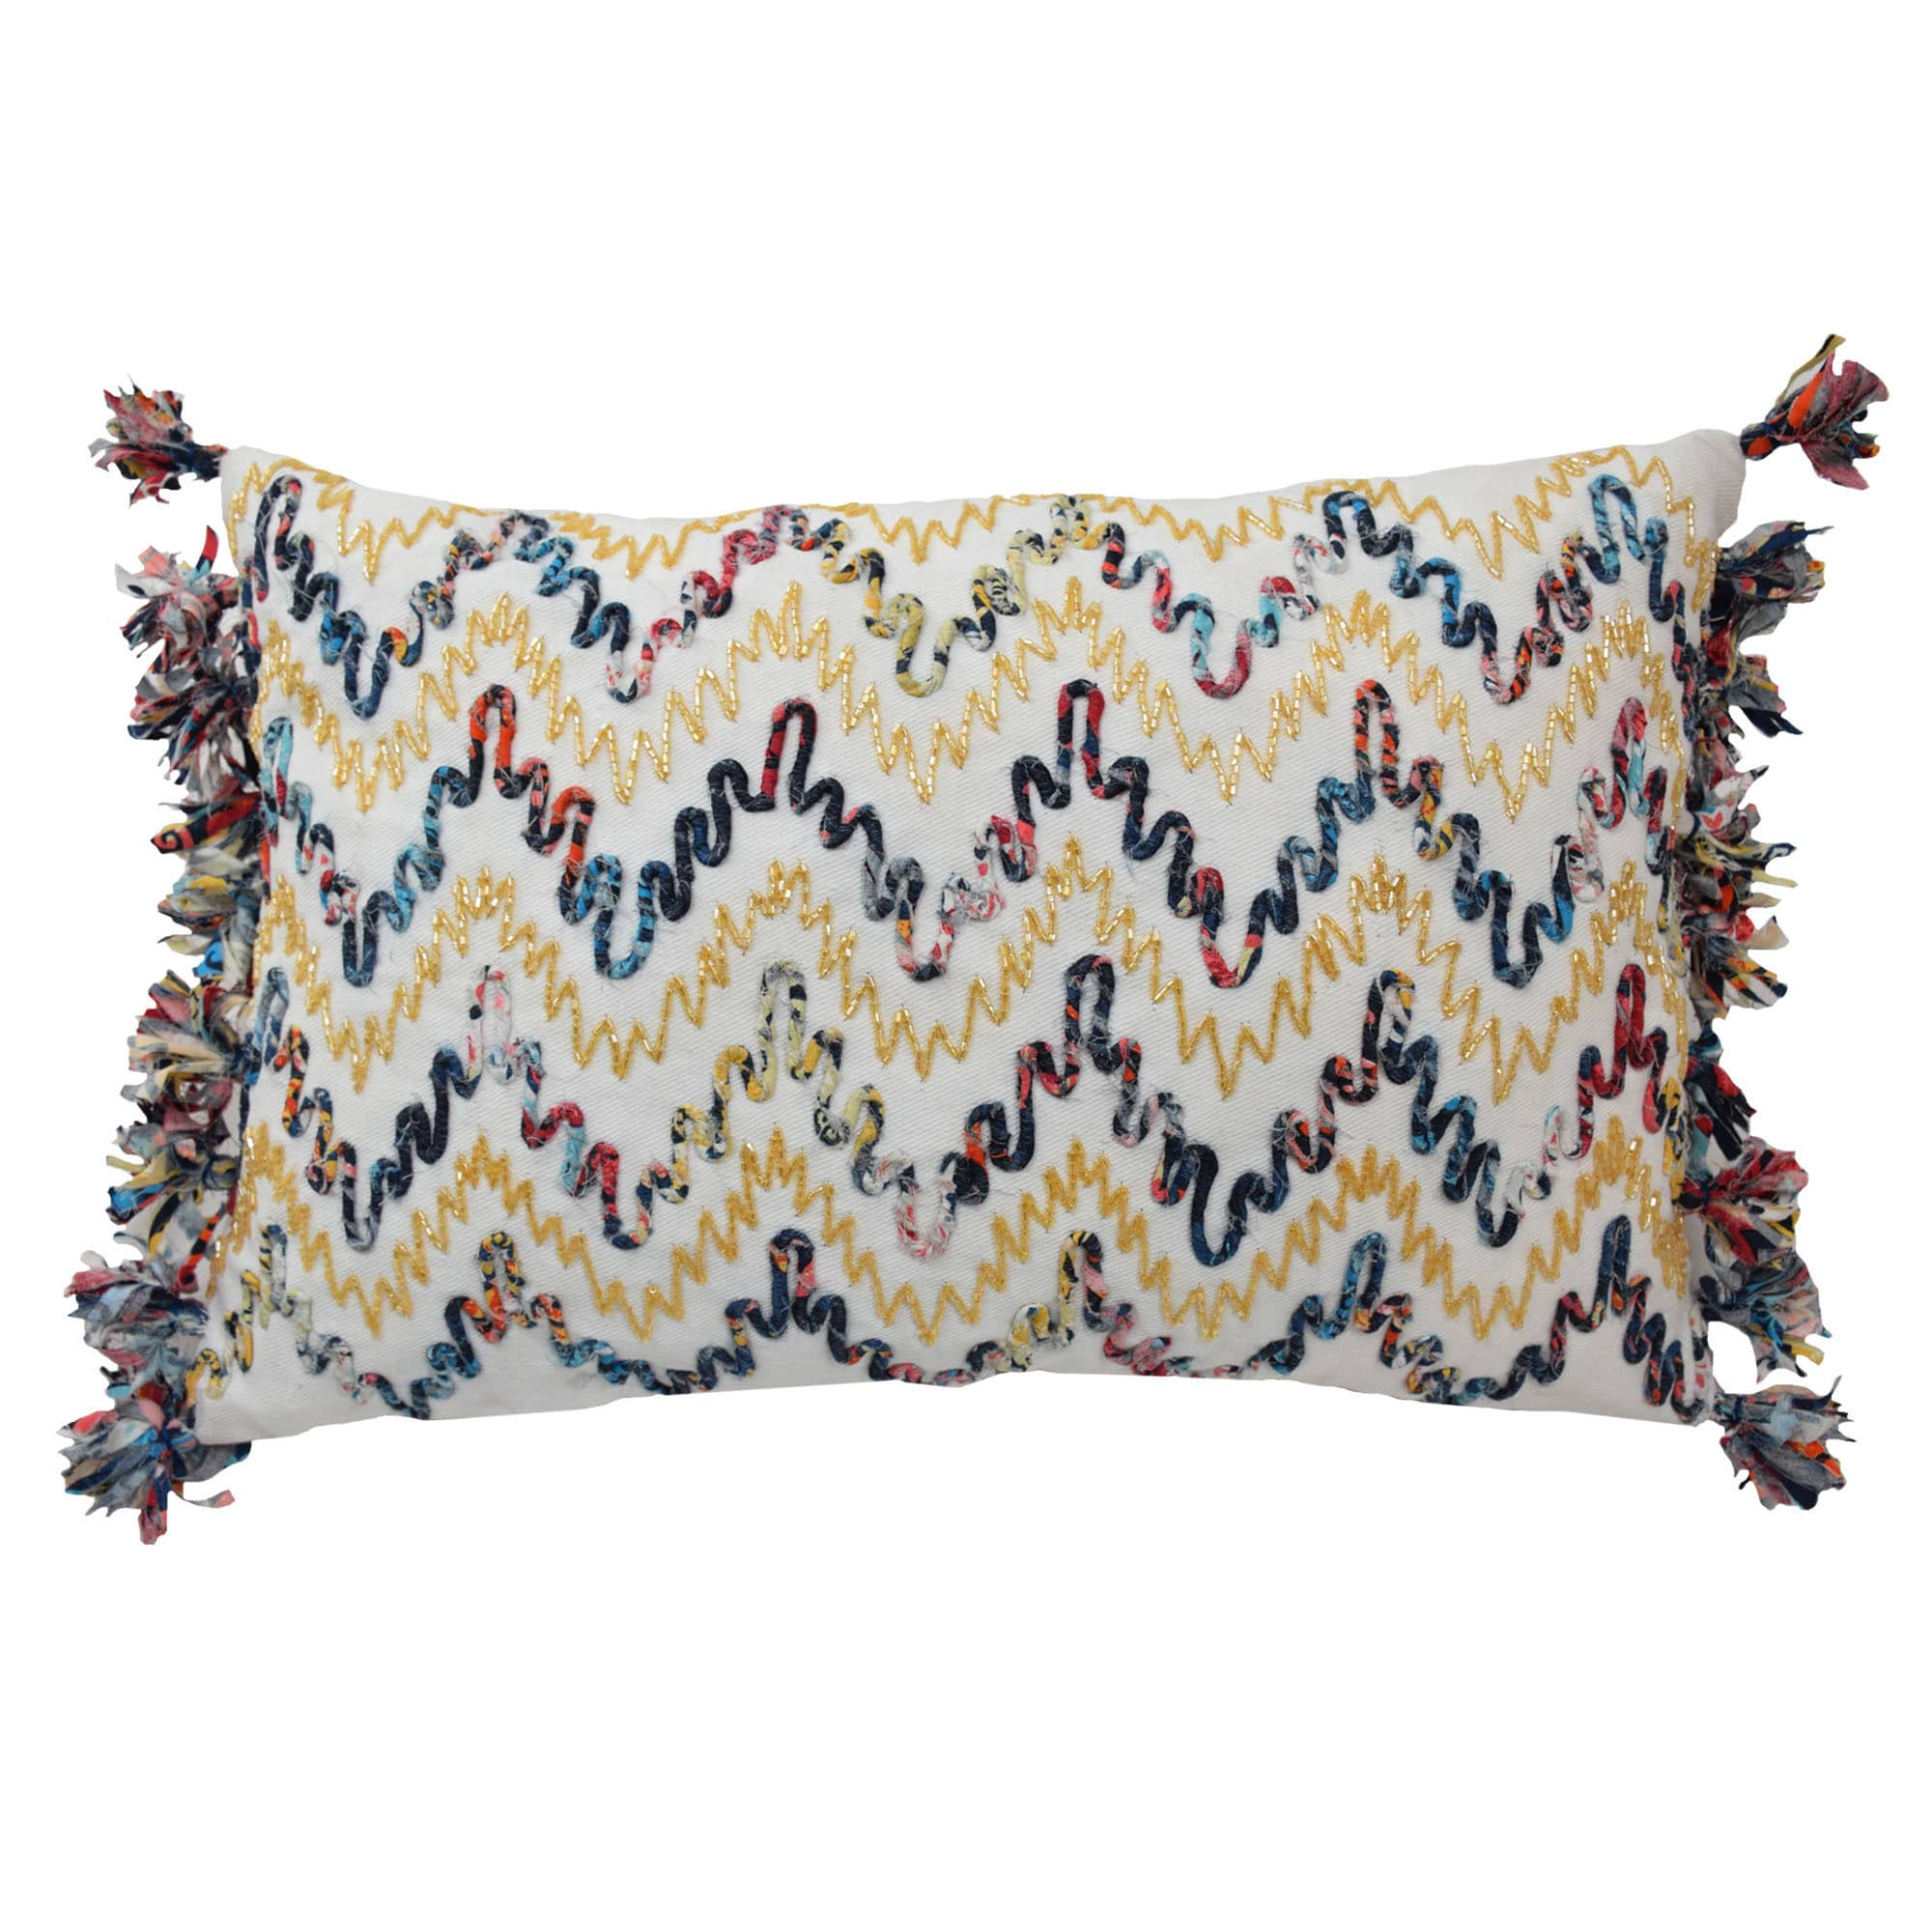 Ellery Homestyles Blissliving Home Luminoso Throw Pillow